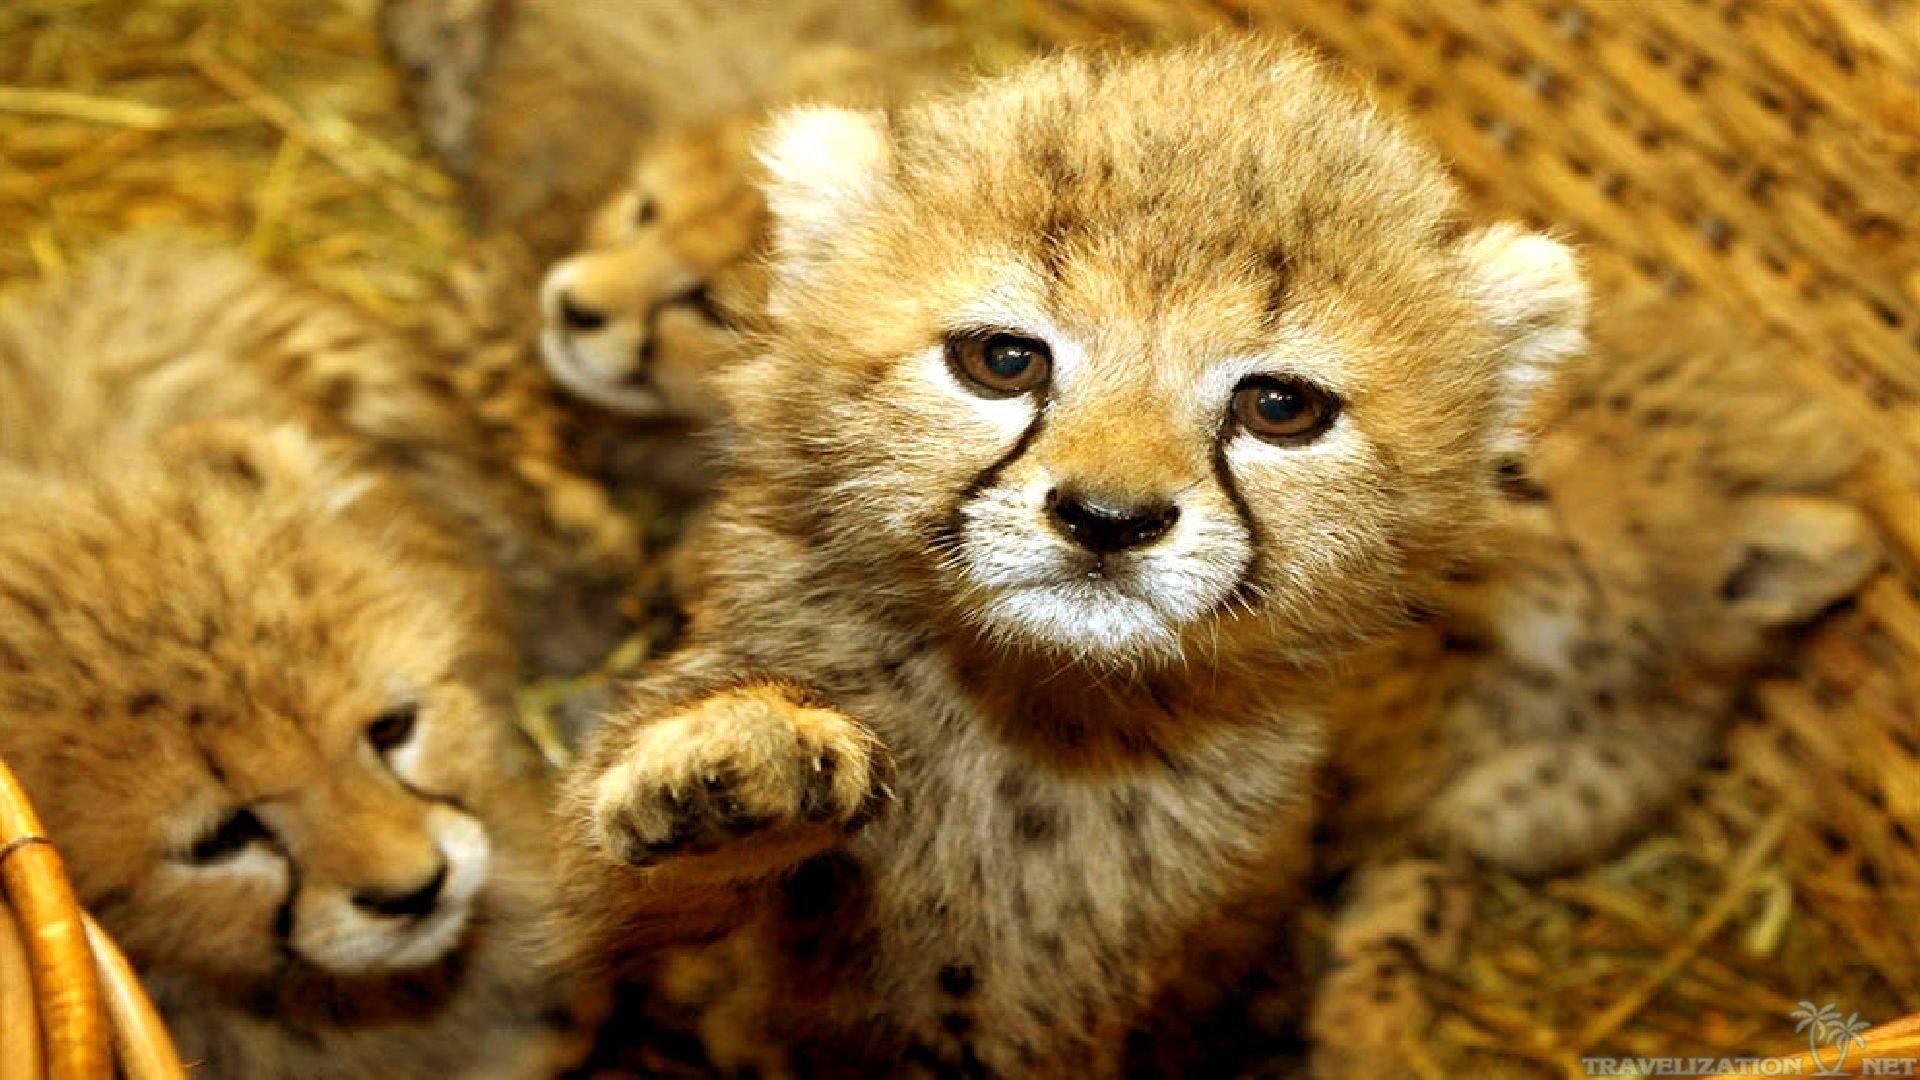 Wallpapers For Gt Cute Baby Animal Backgrounds Cute Baby Animals Baby Cheetahs Cute Animal Photos